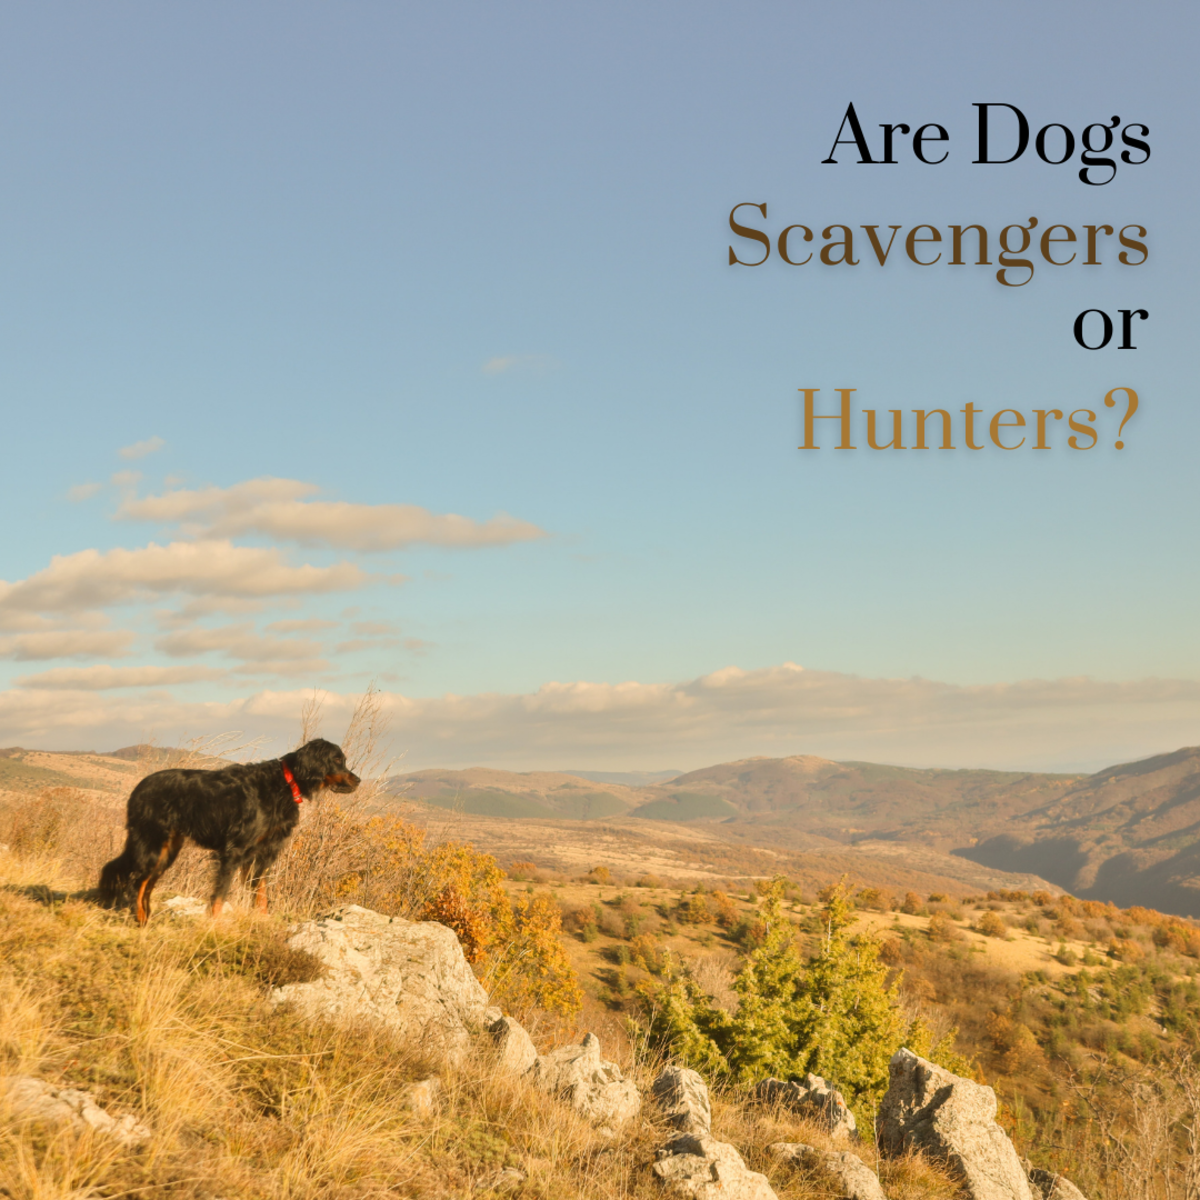 This article will take a look at the debate between whether domesticated dogs are predominantly scavengers or hunters.